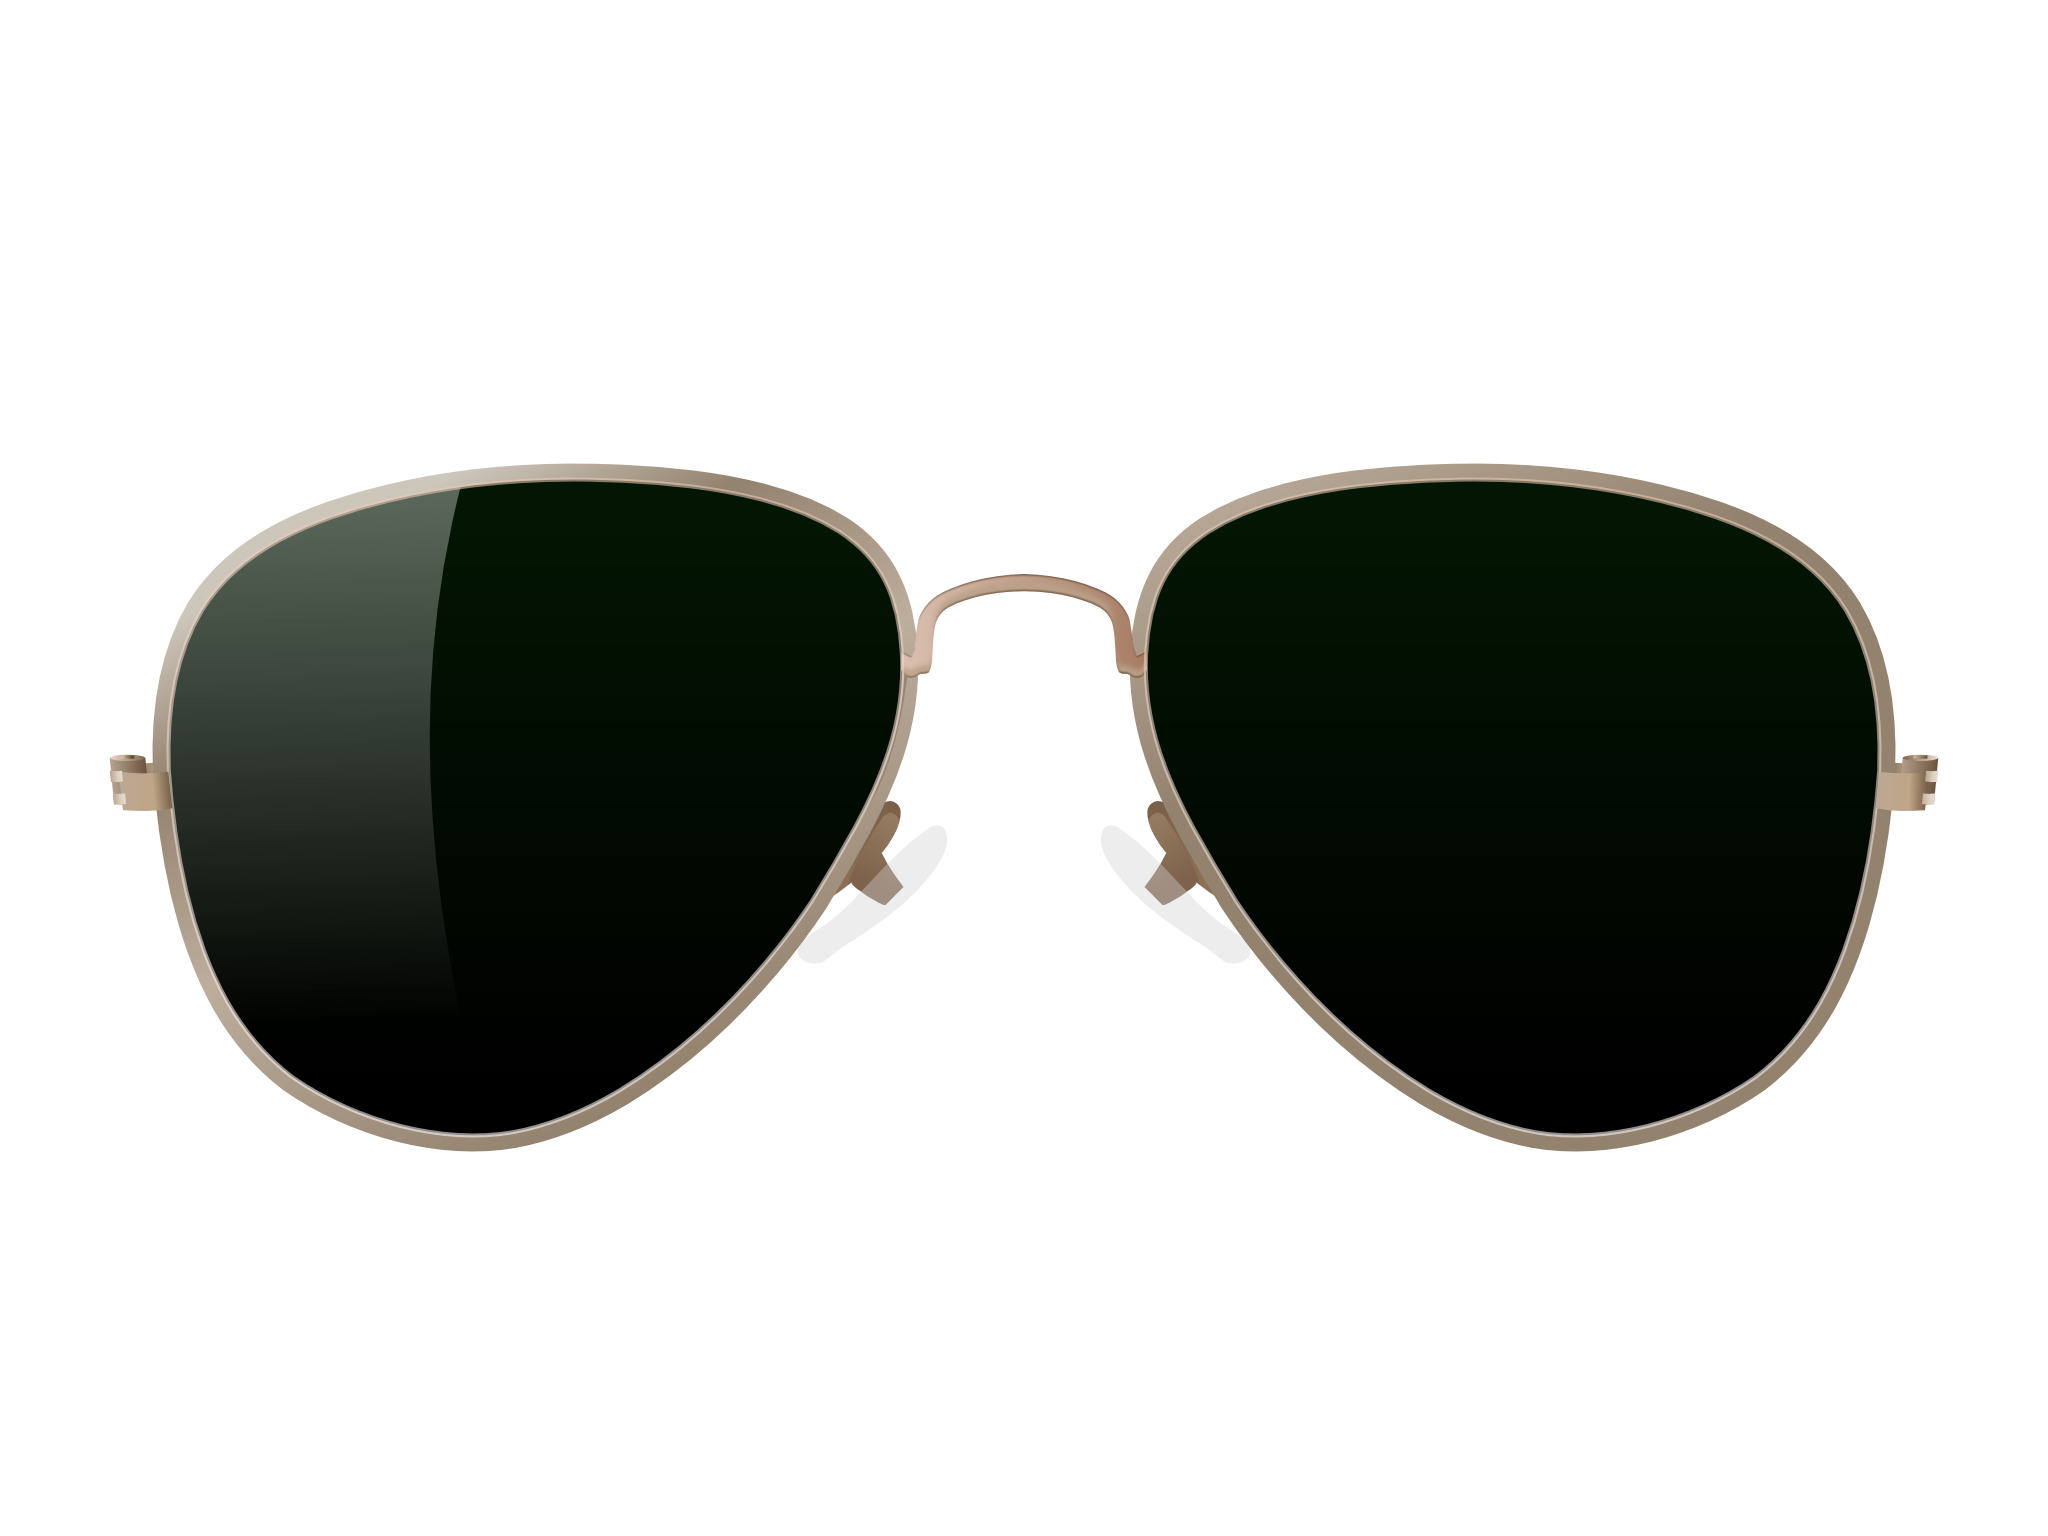 Ray Ban Aviator Sunglasses Lowest  fake black archives glasses